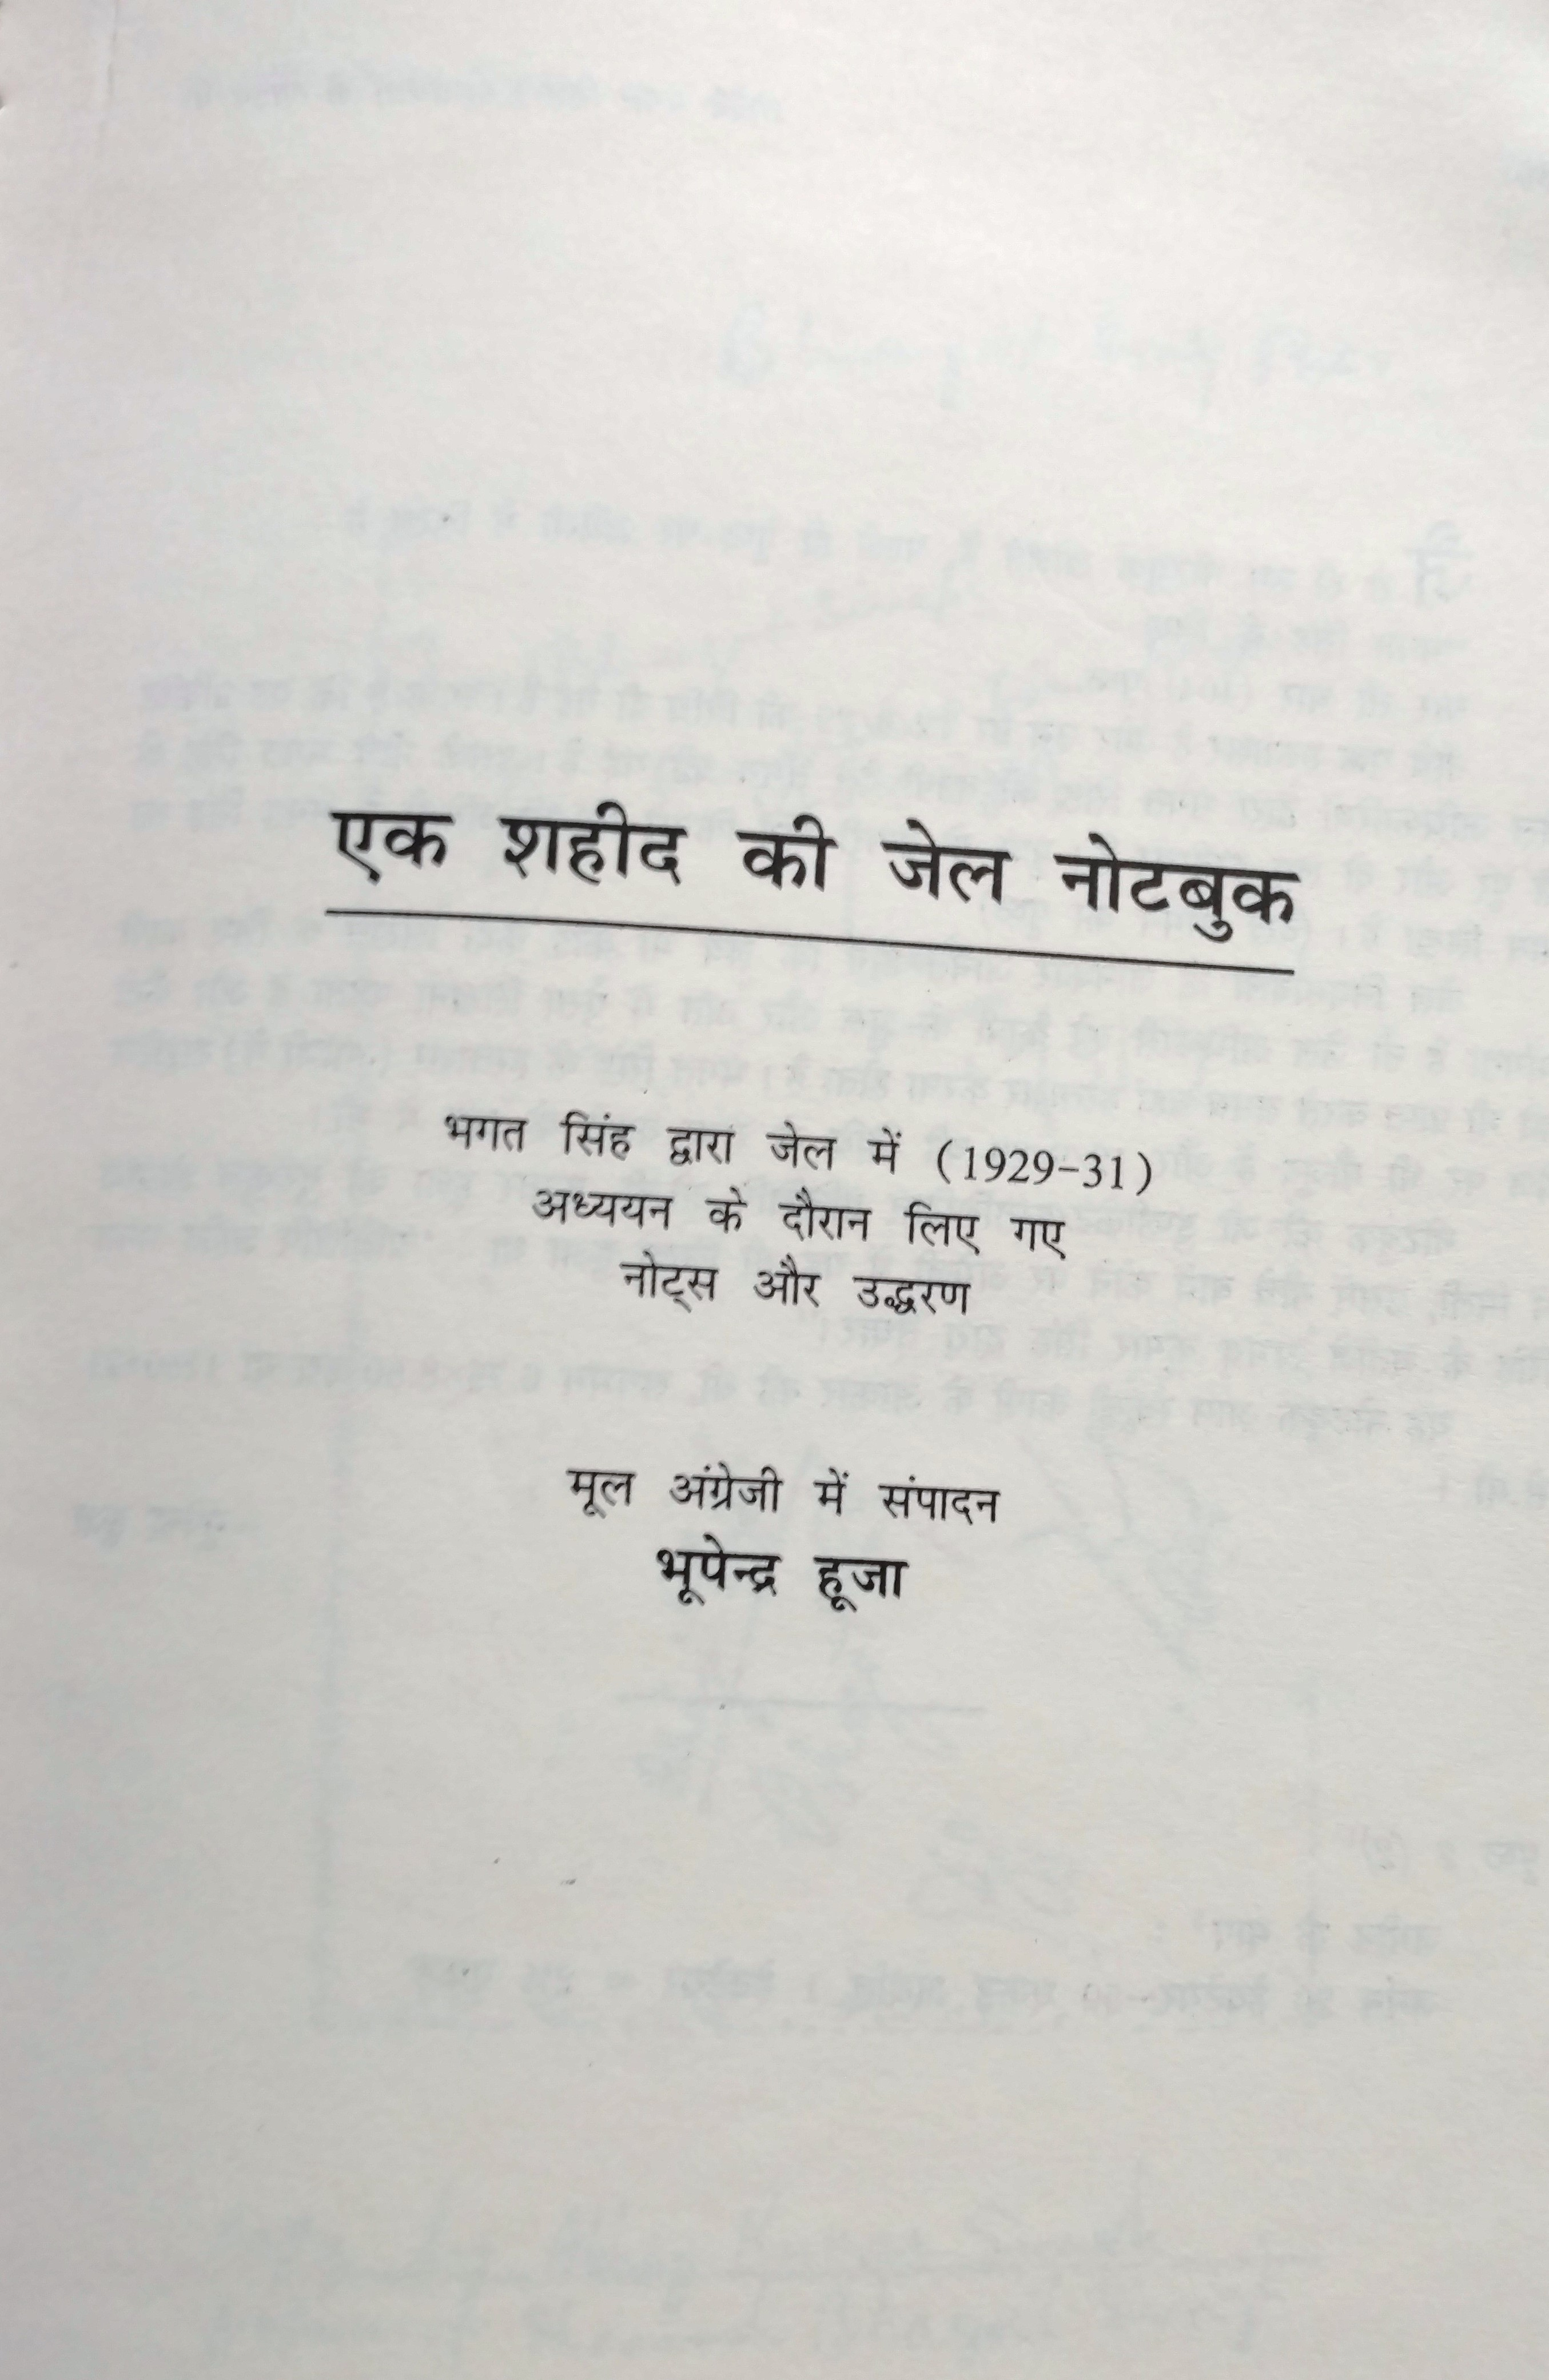 hindi essay on bhagat singh a short publication history of bhagat singh s jail notebook